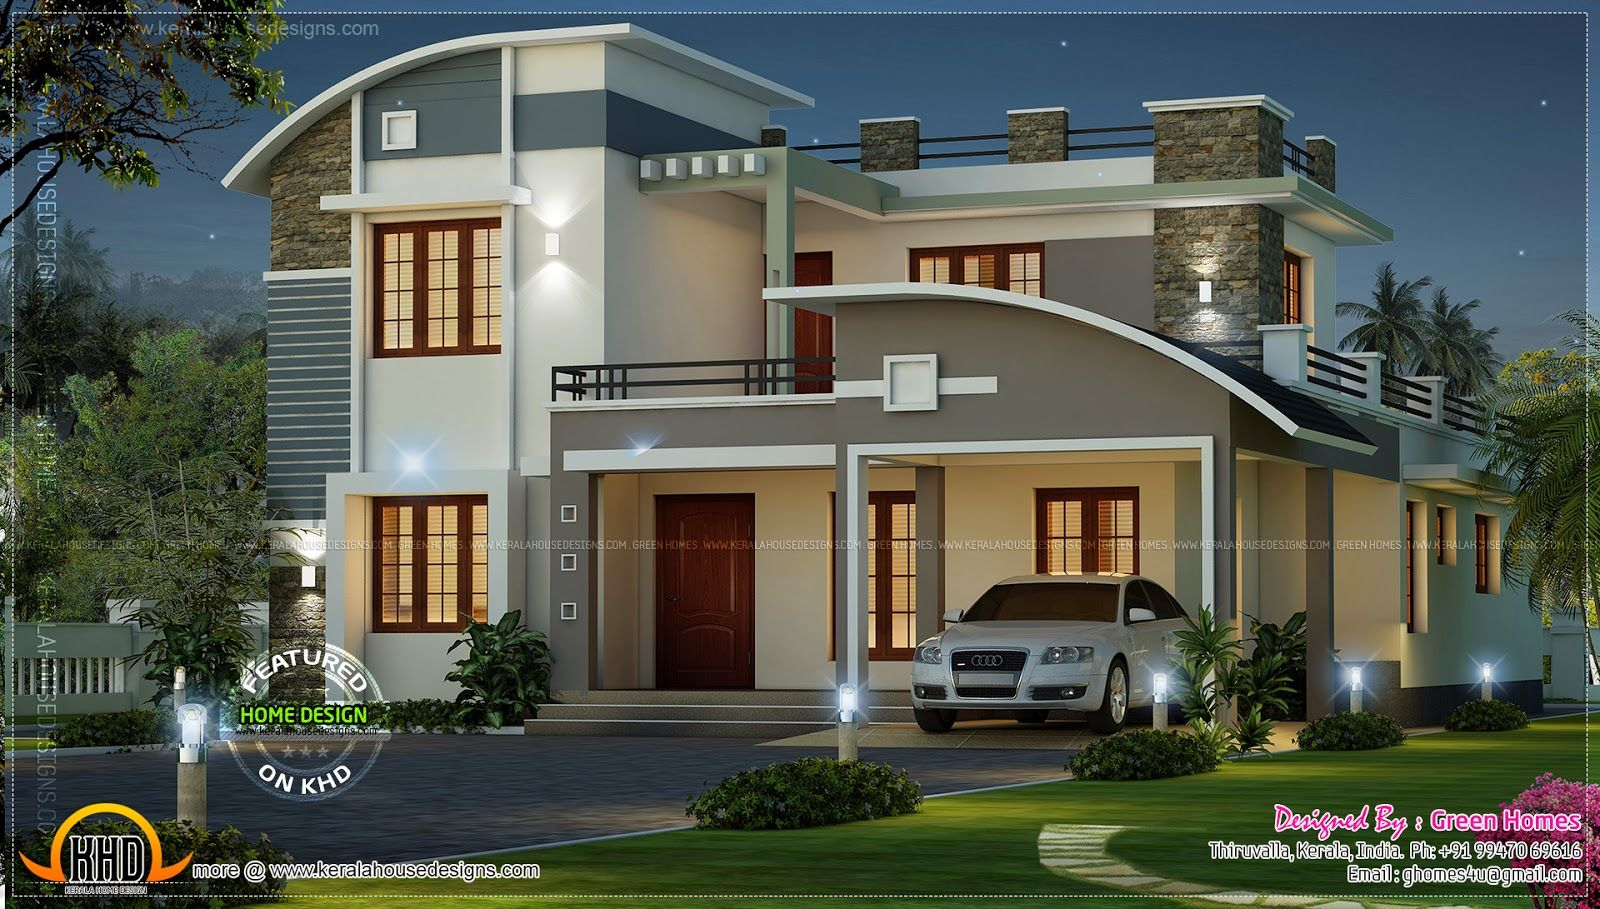 Small modern homes beautiful 4 bhk contemporary modern simple indian house design ideas for the house pinterest indian house designs indian house